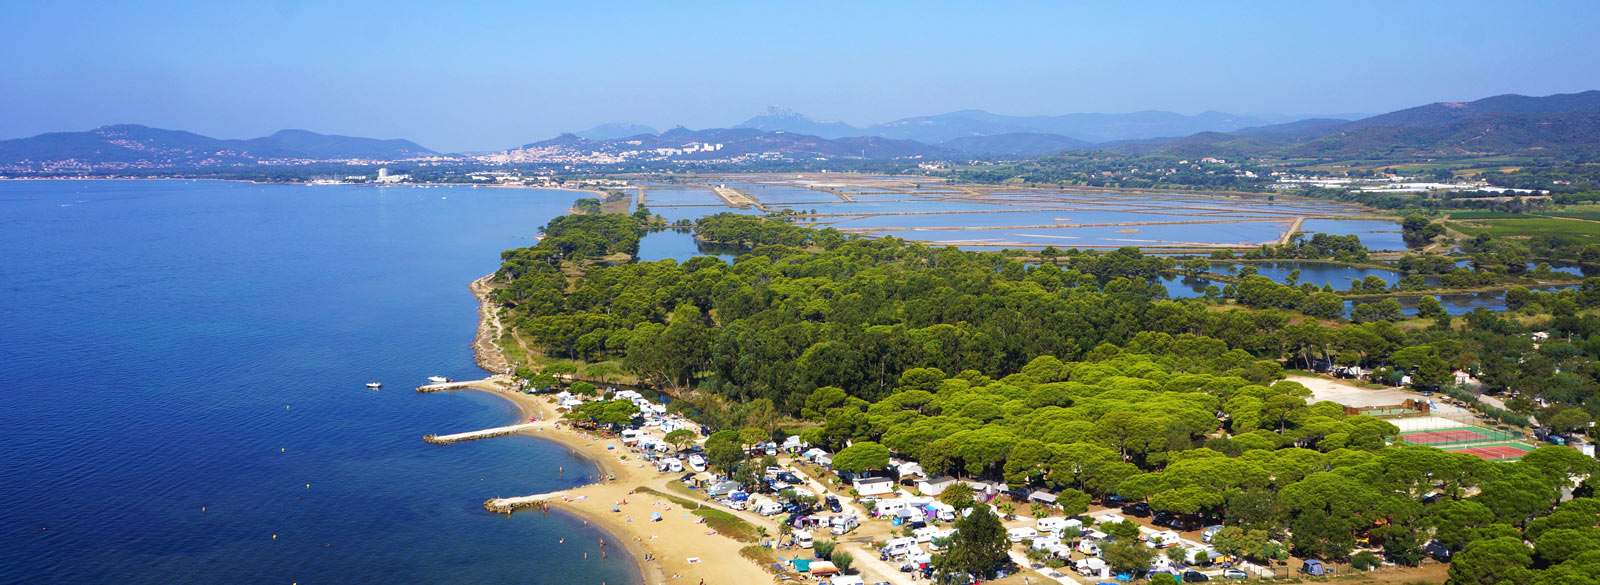 camping 3 etoiles massif des maures - Plage du camping